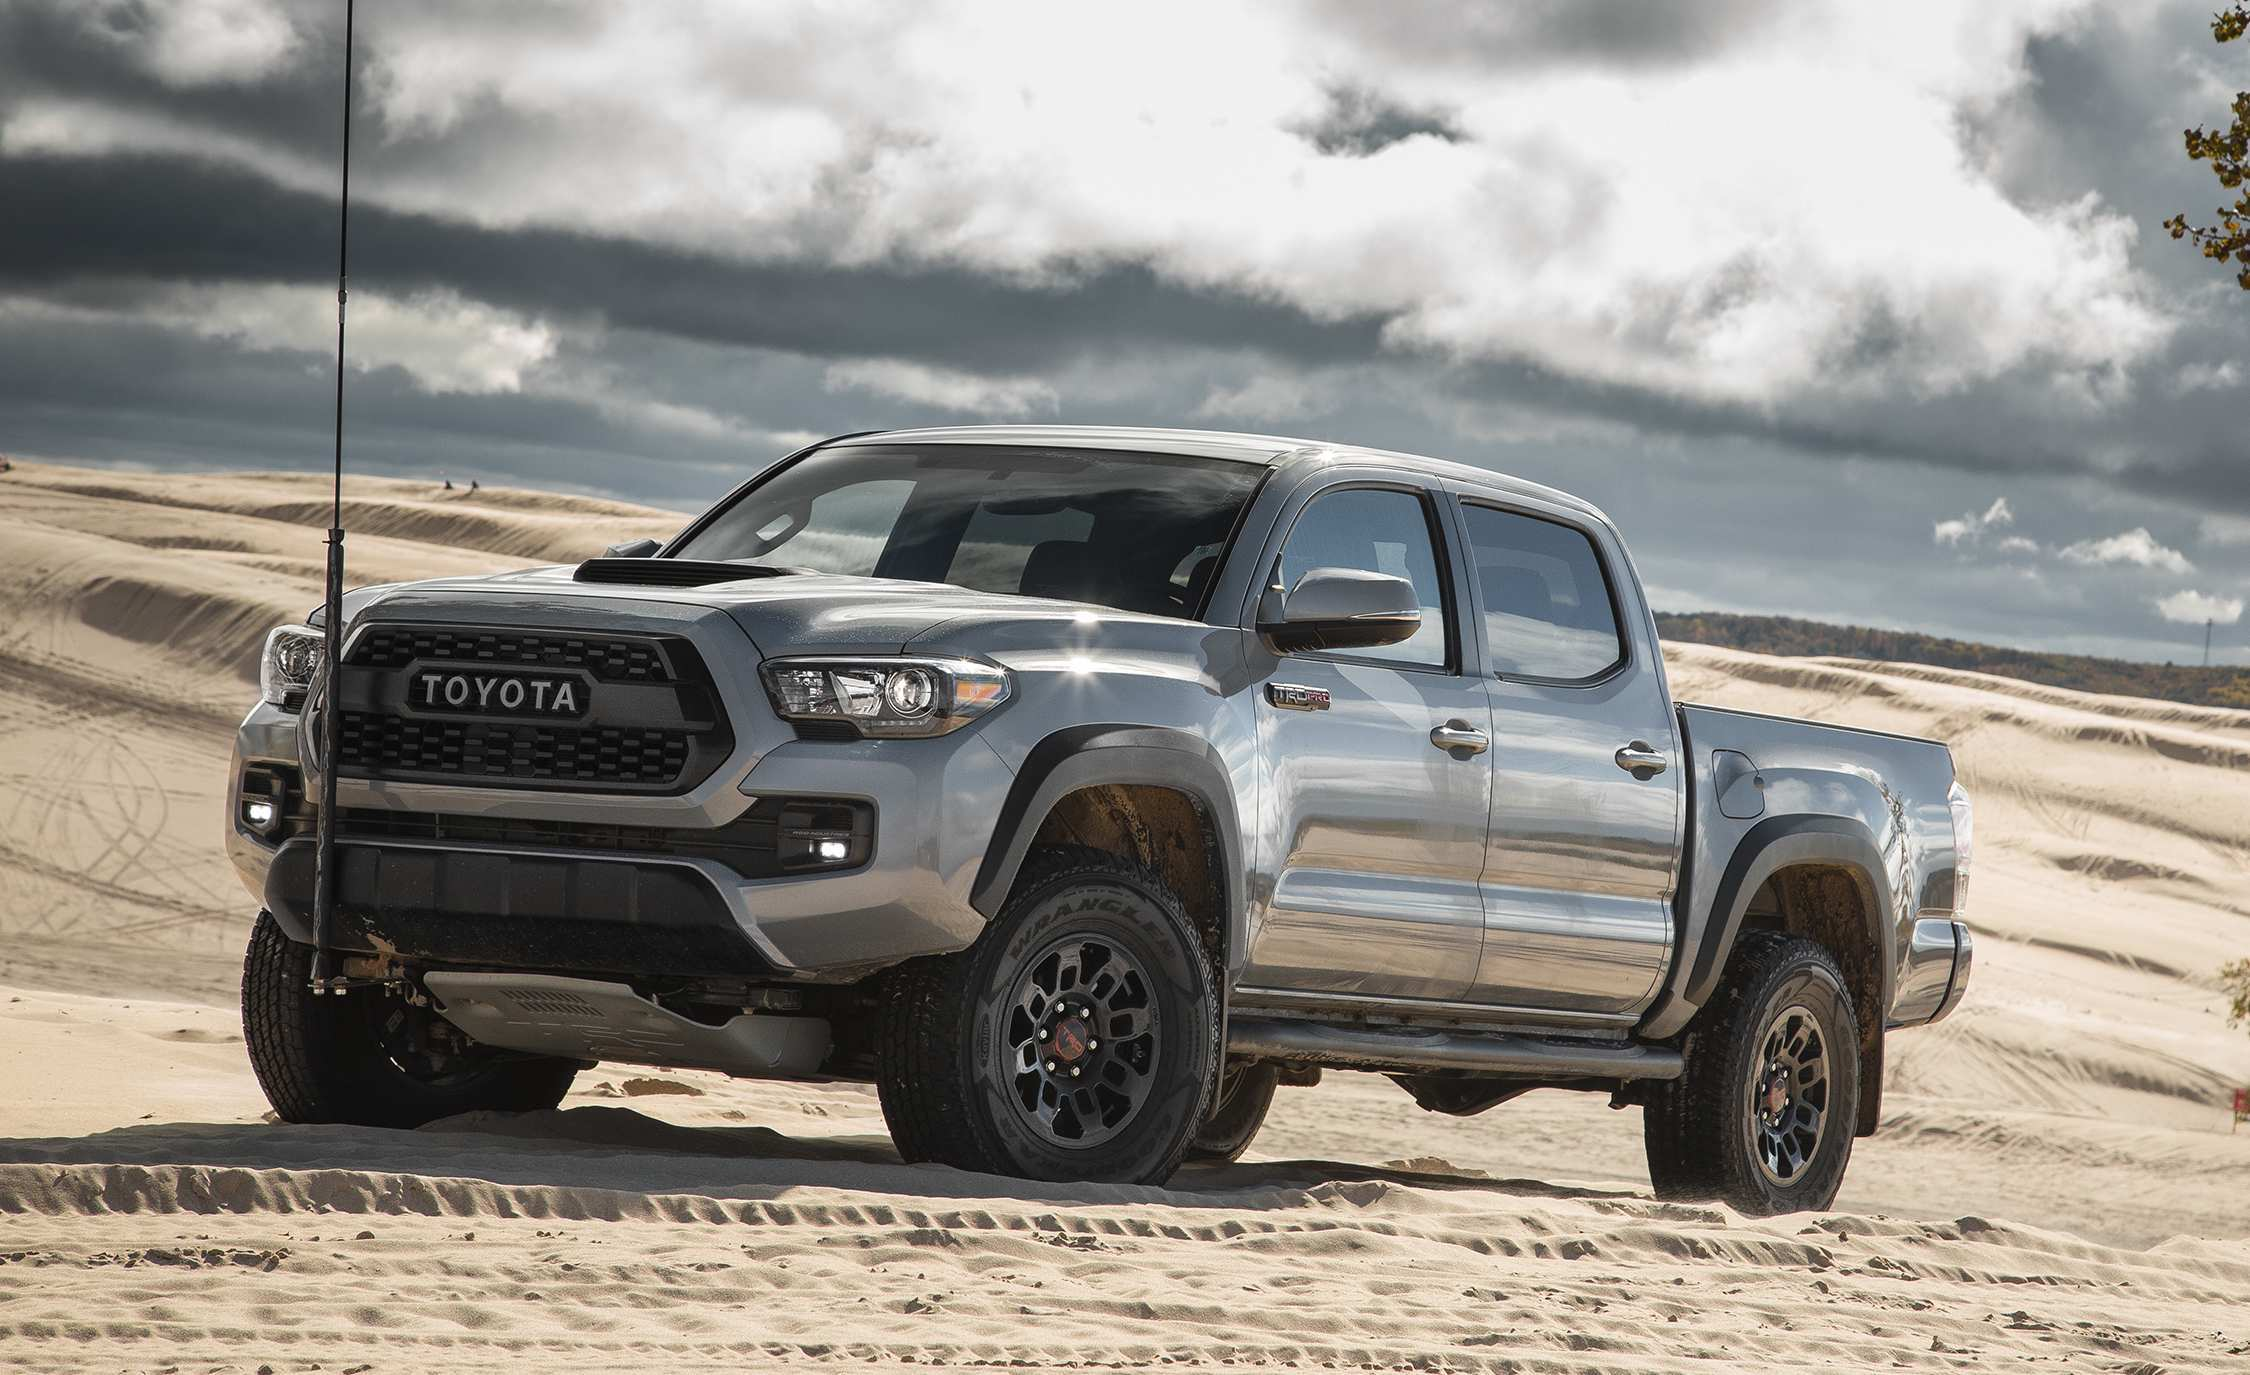 49 Best 2019 Toyota Diesel Truck Price And Release Date